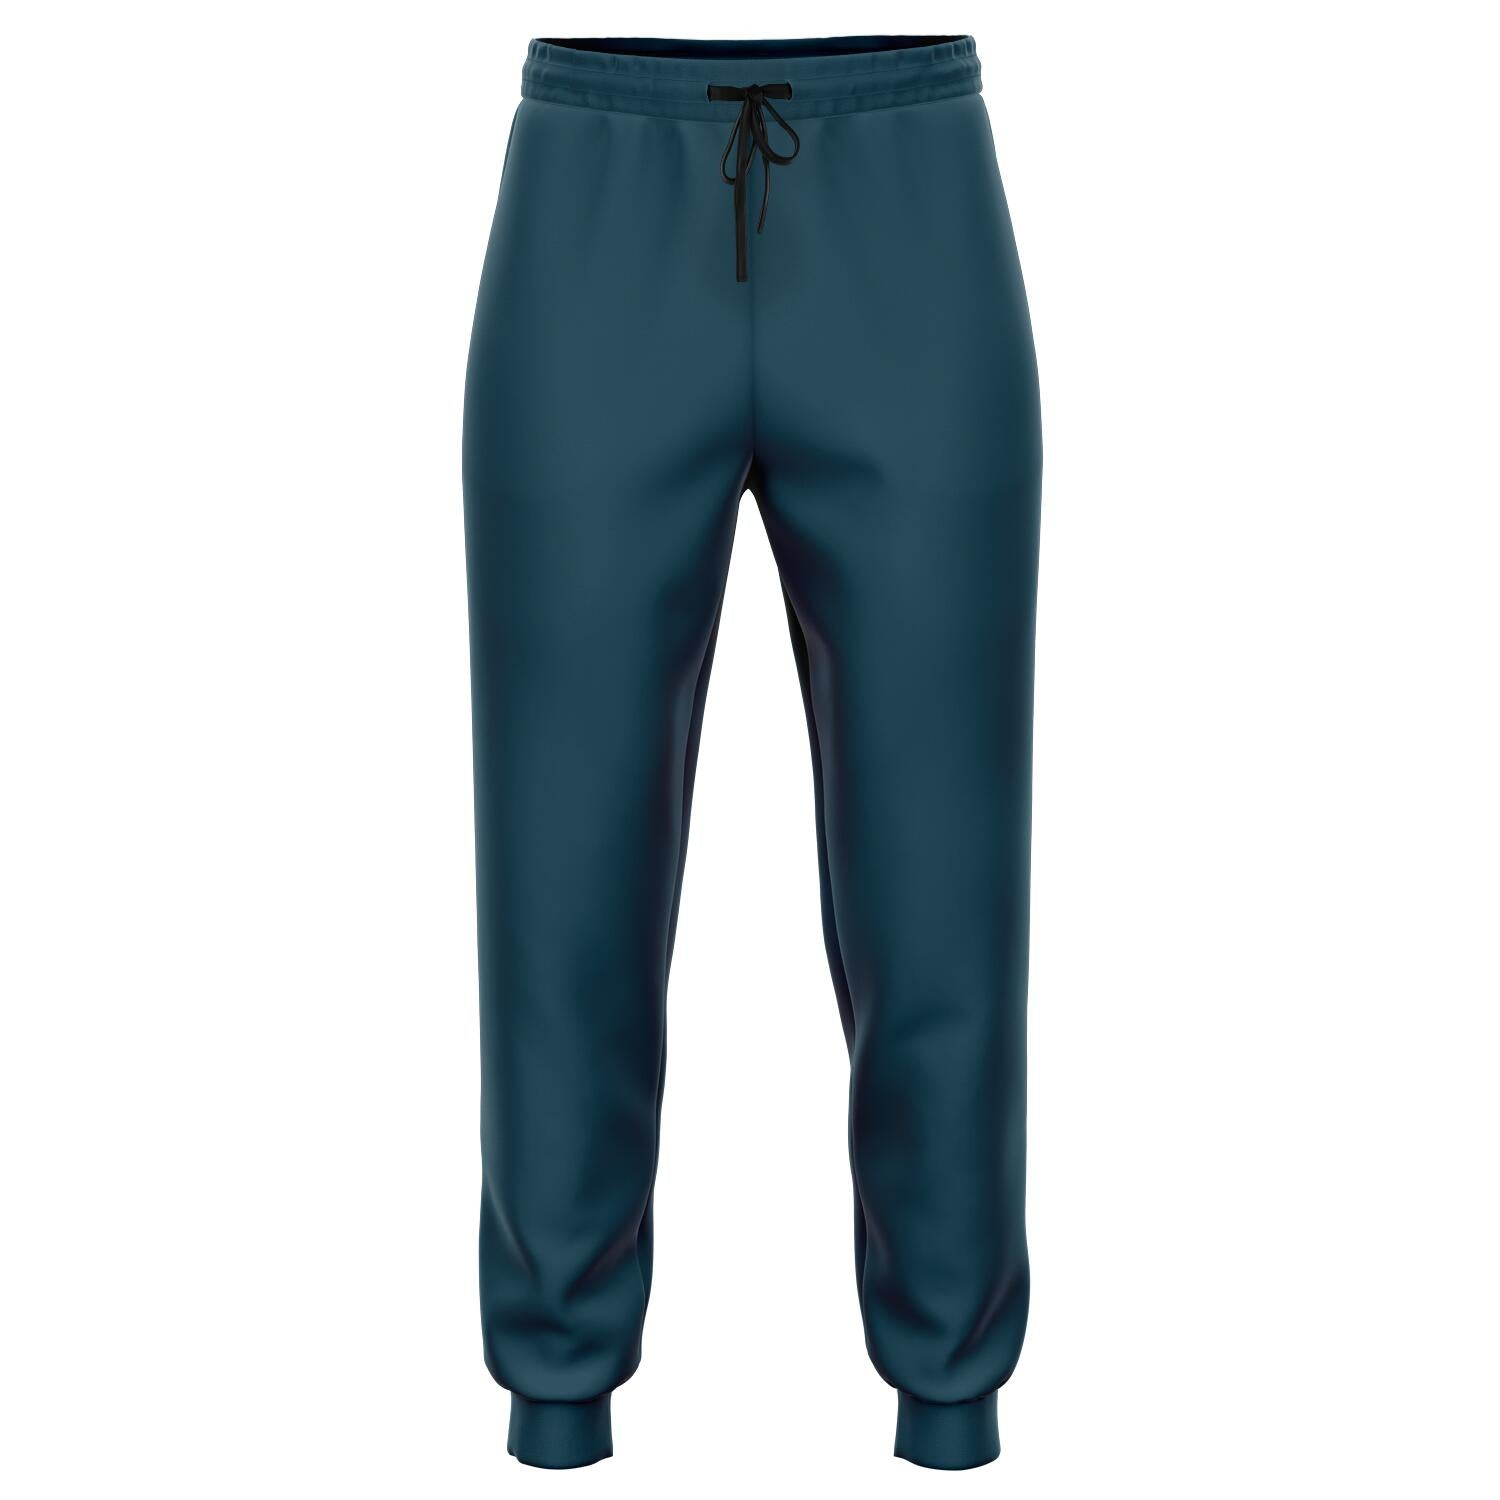 Teal Athletic Joggers